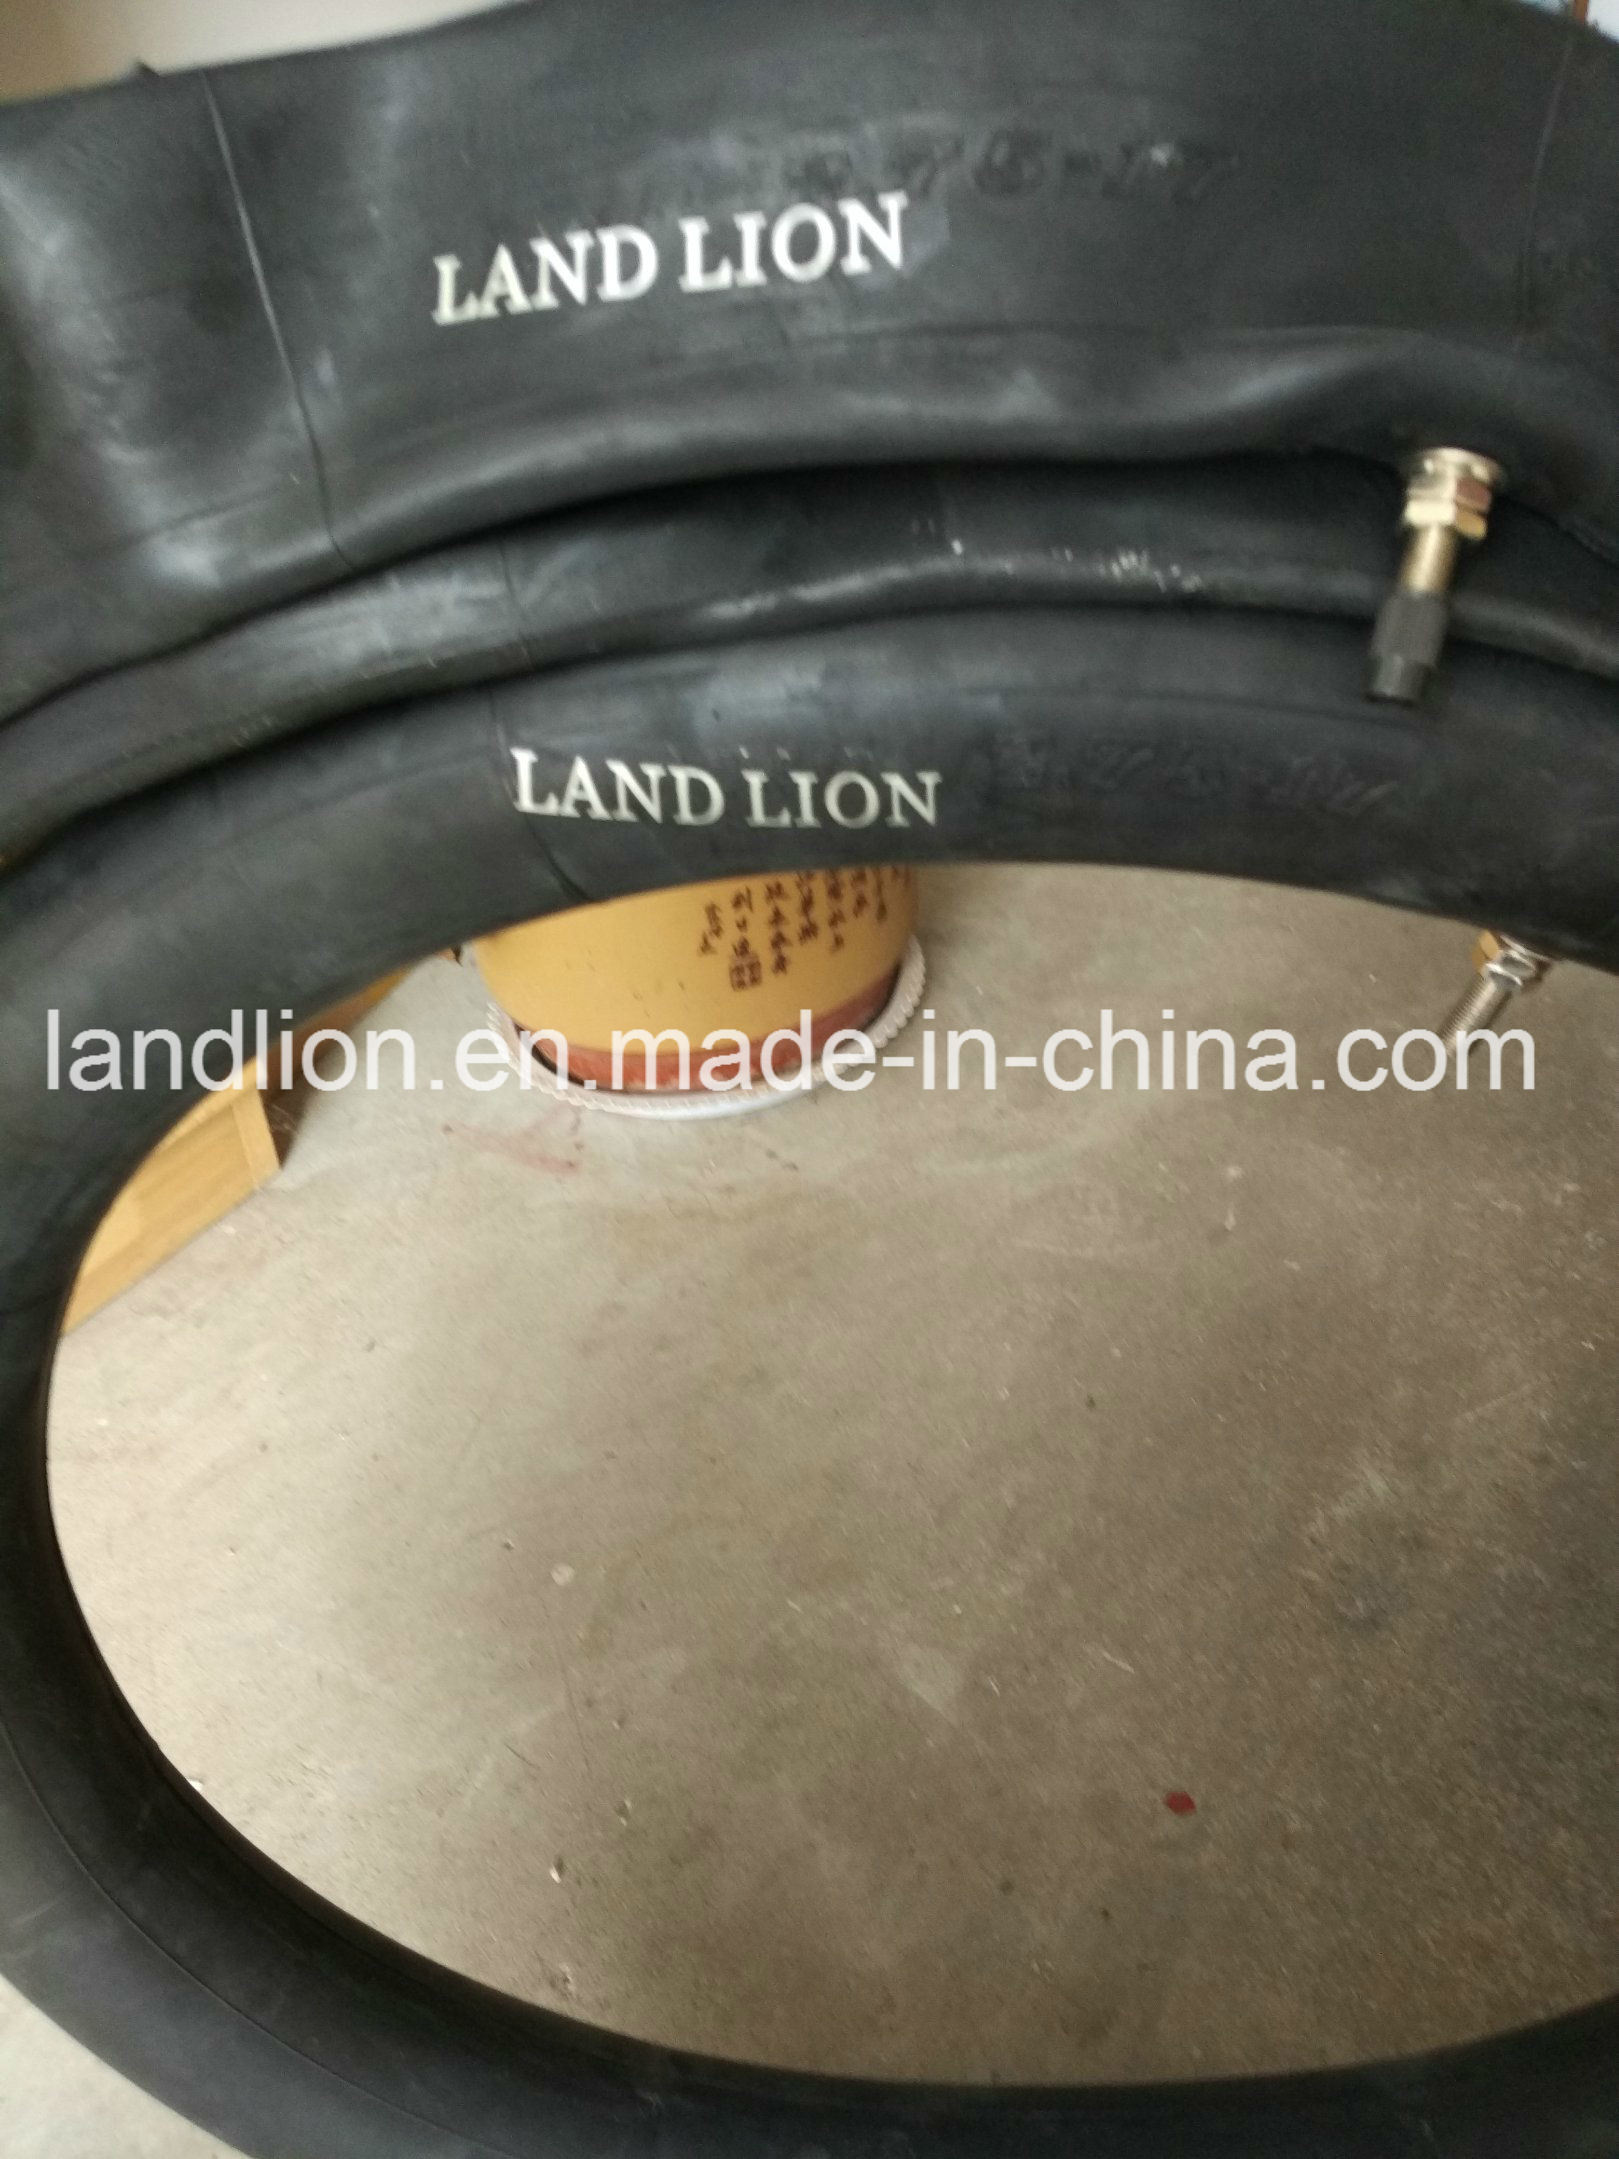 Factory Land Lion Excellent Quality with Best Price3.00-16, 2.50-17 pictures & photos